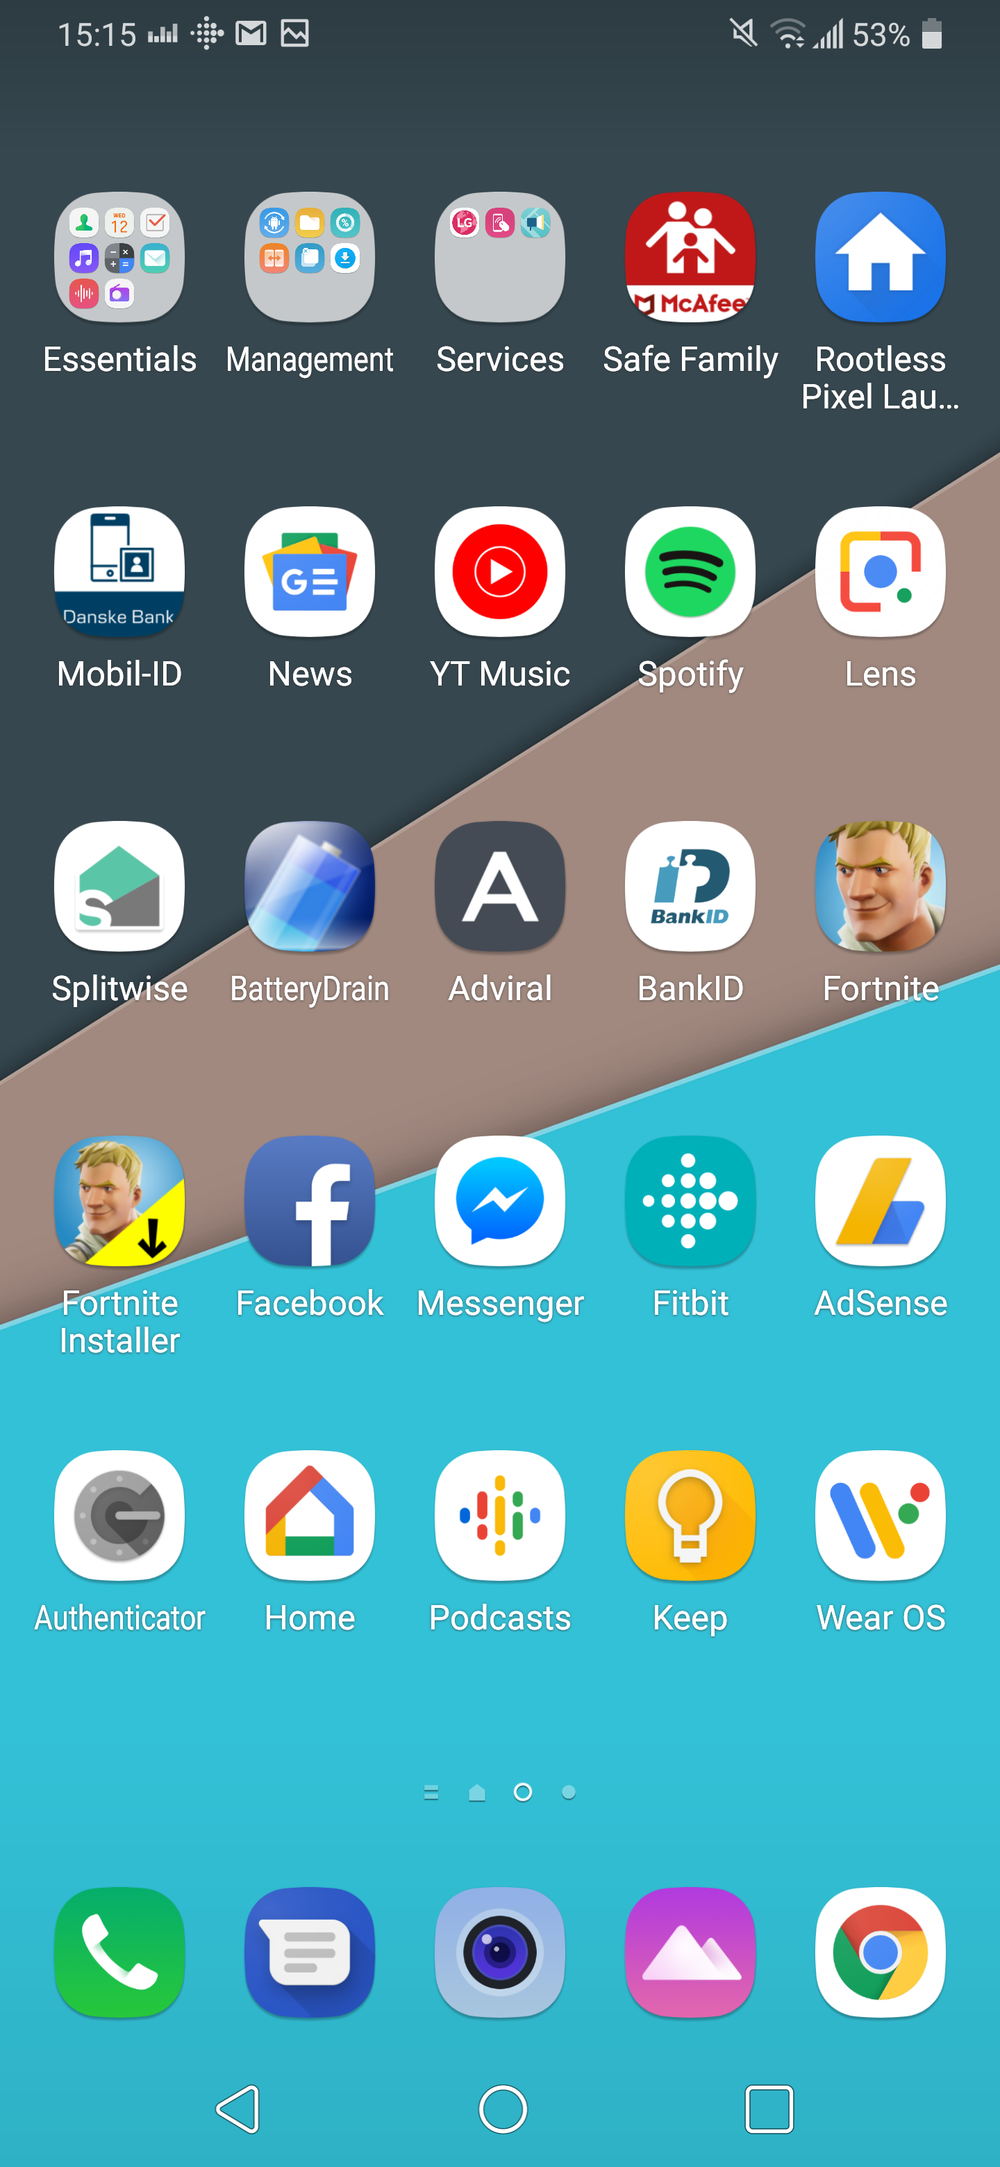 Cluttered apps